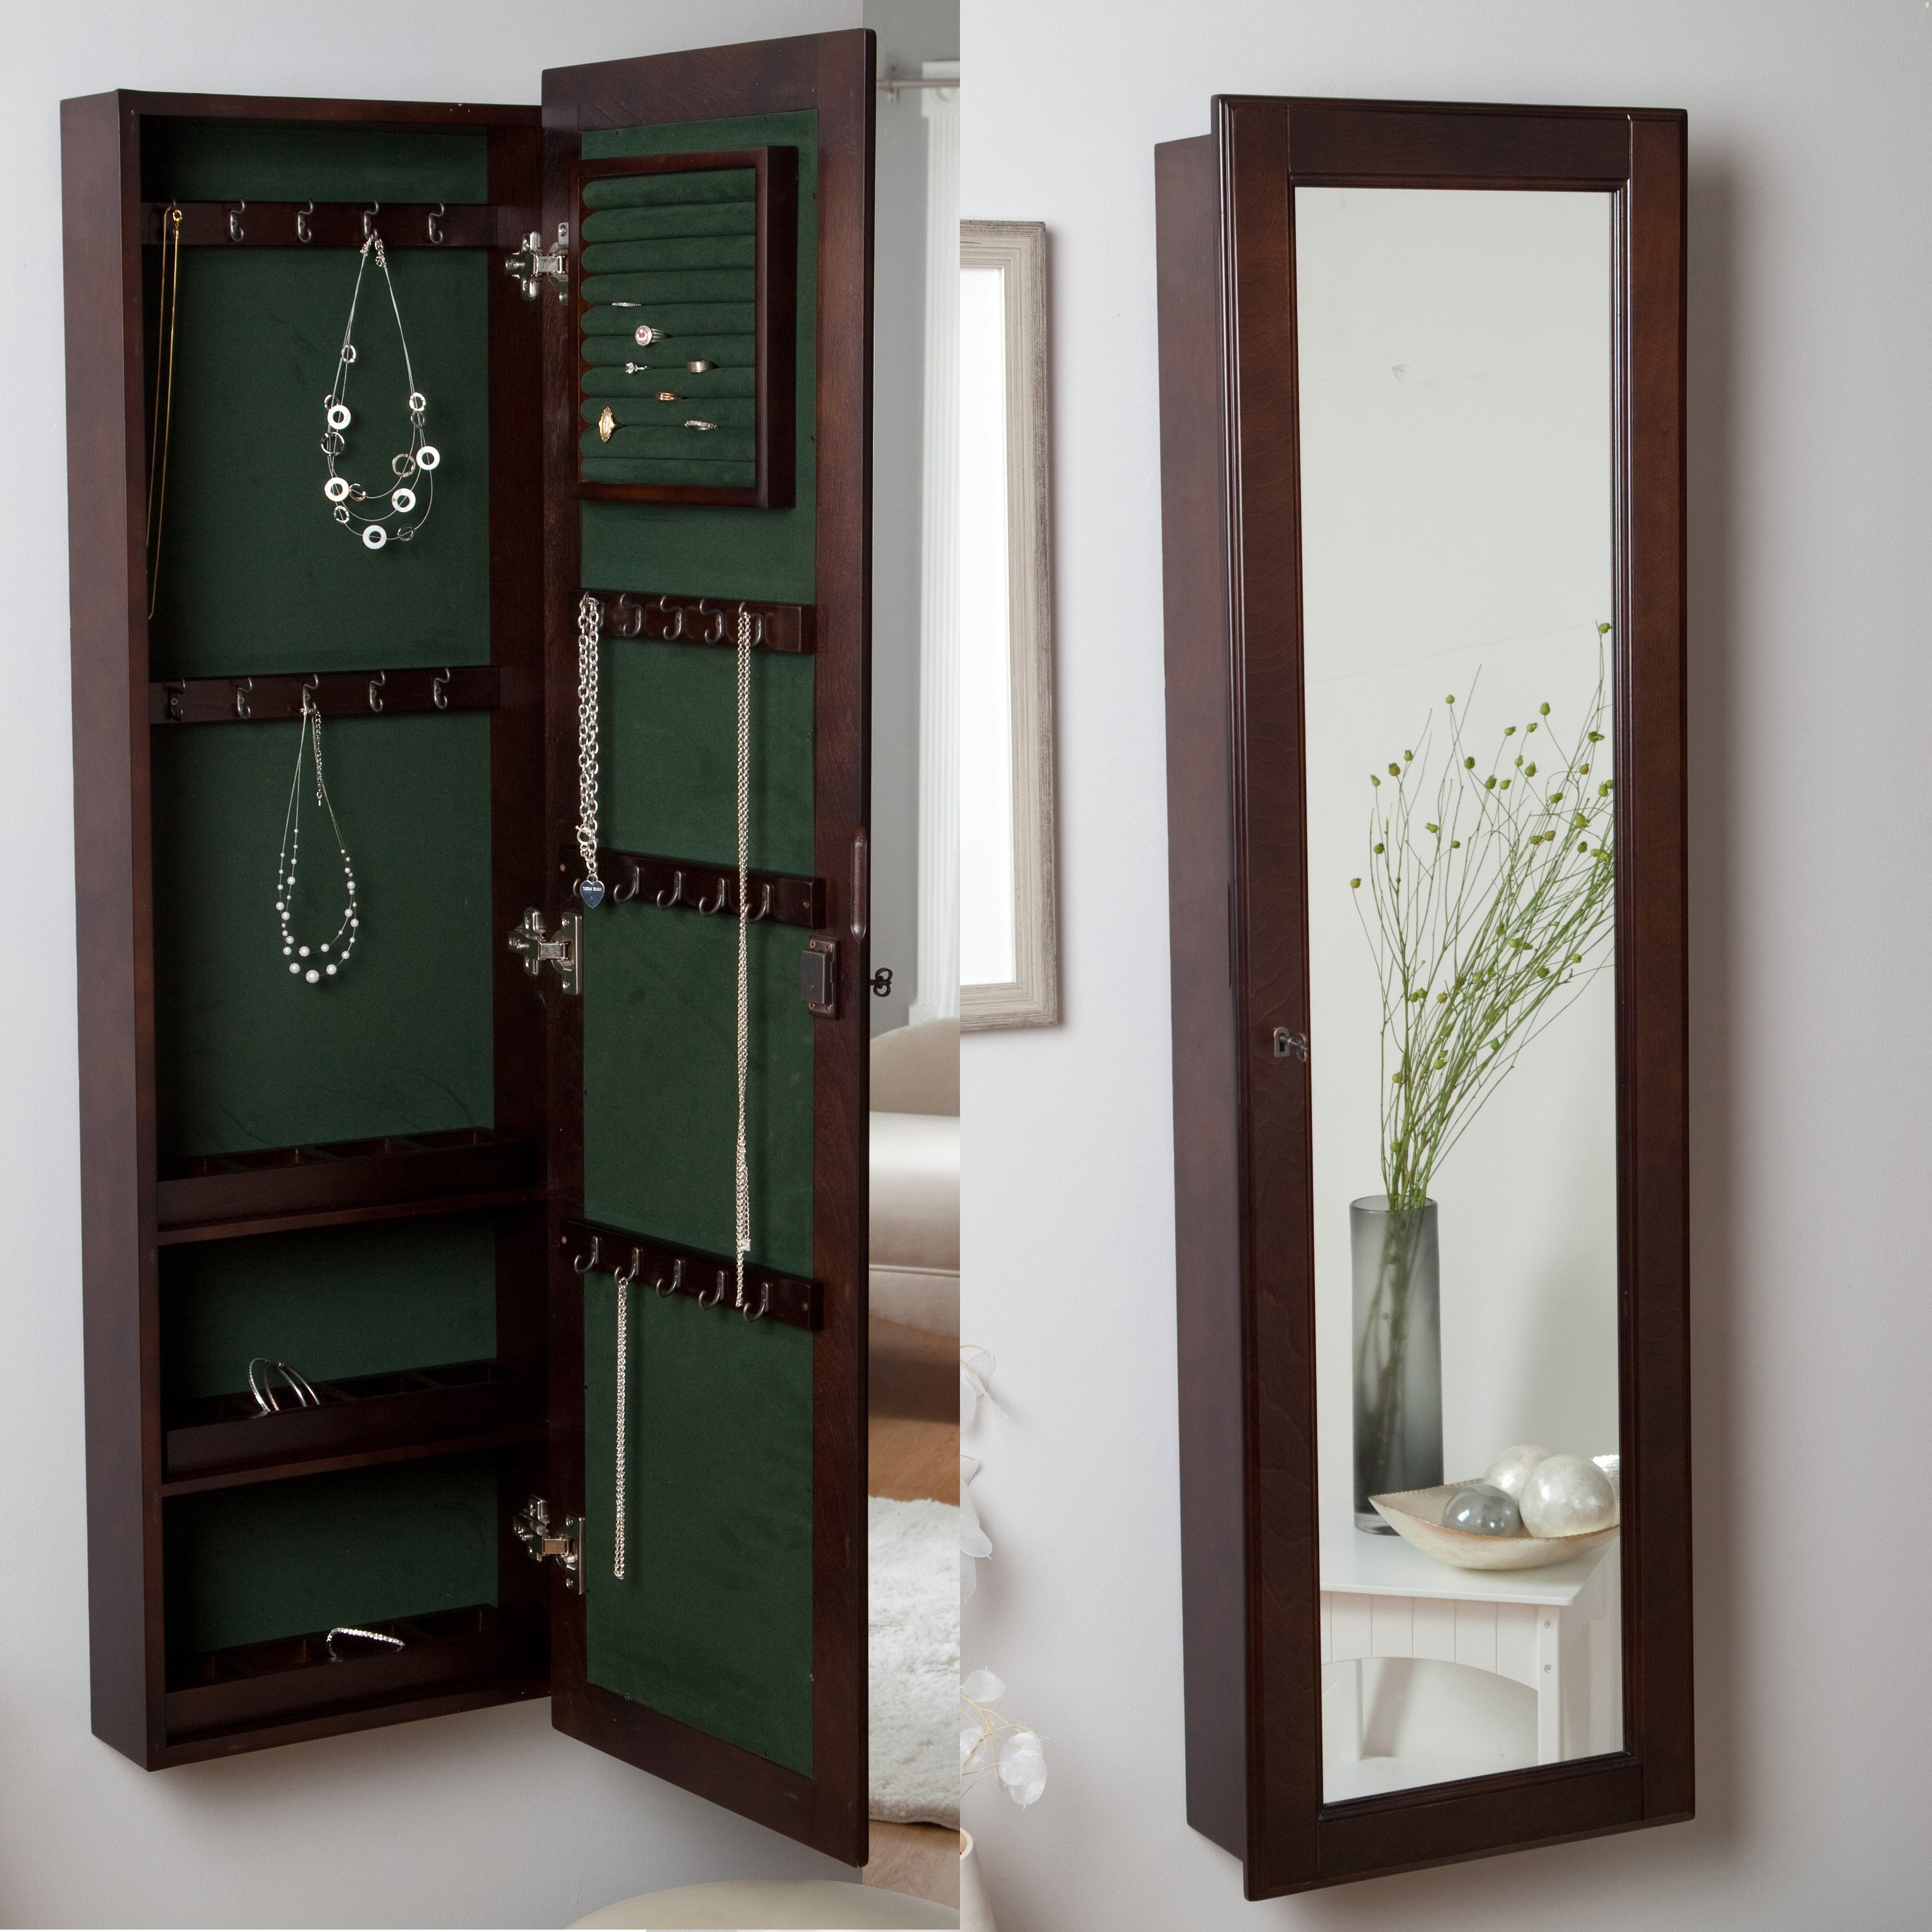 Jewelry Wall Mirrors Intended For Fashionable Wall Mounted Locking Wooden Jewelry Armoire – 14.5w X 50h In (View 7 of 20)